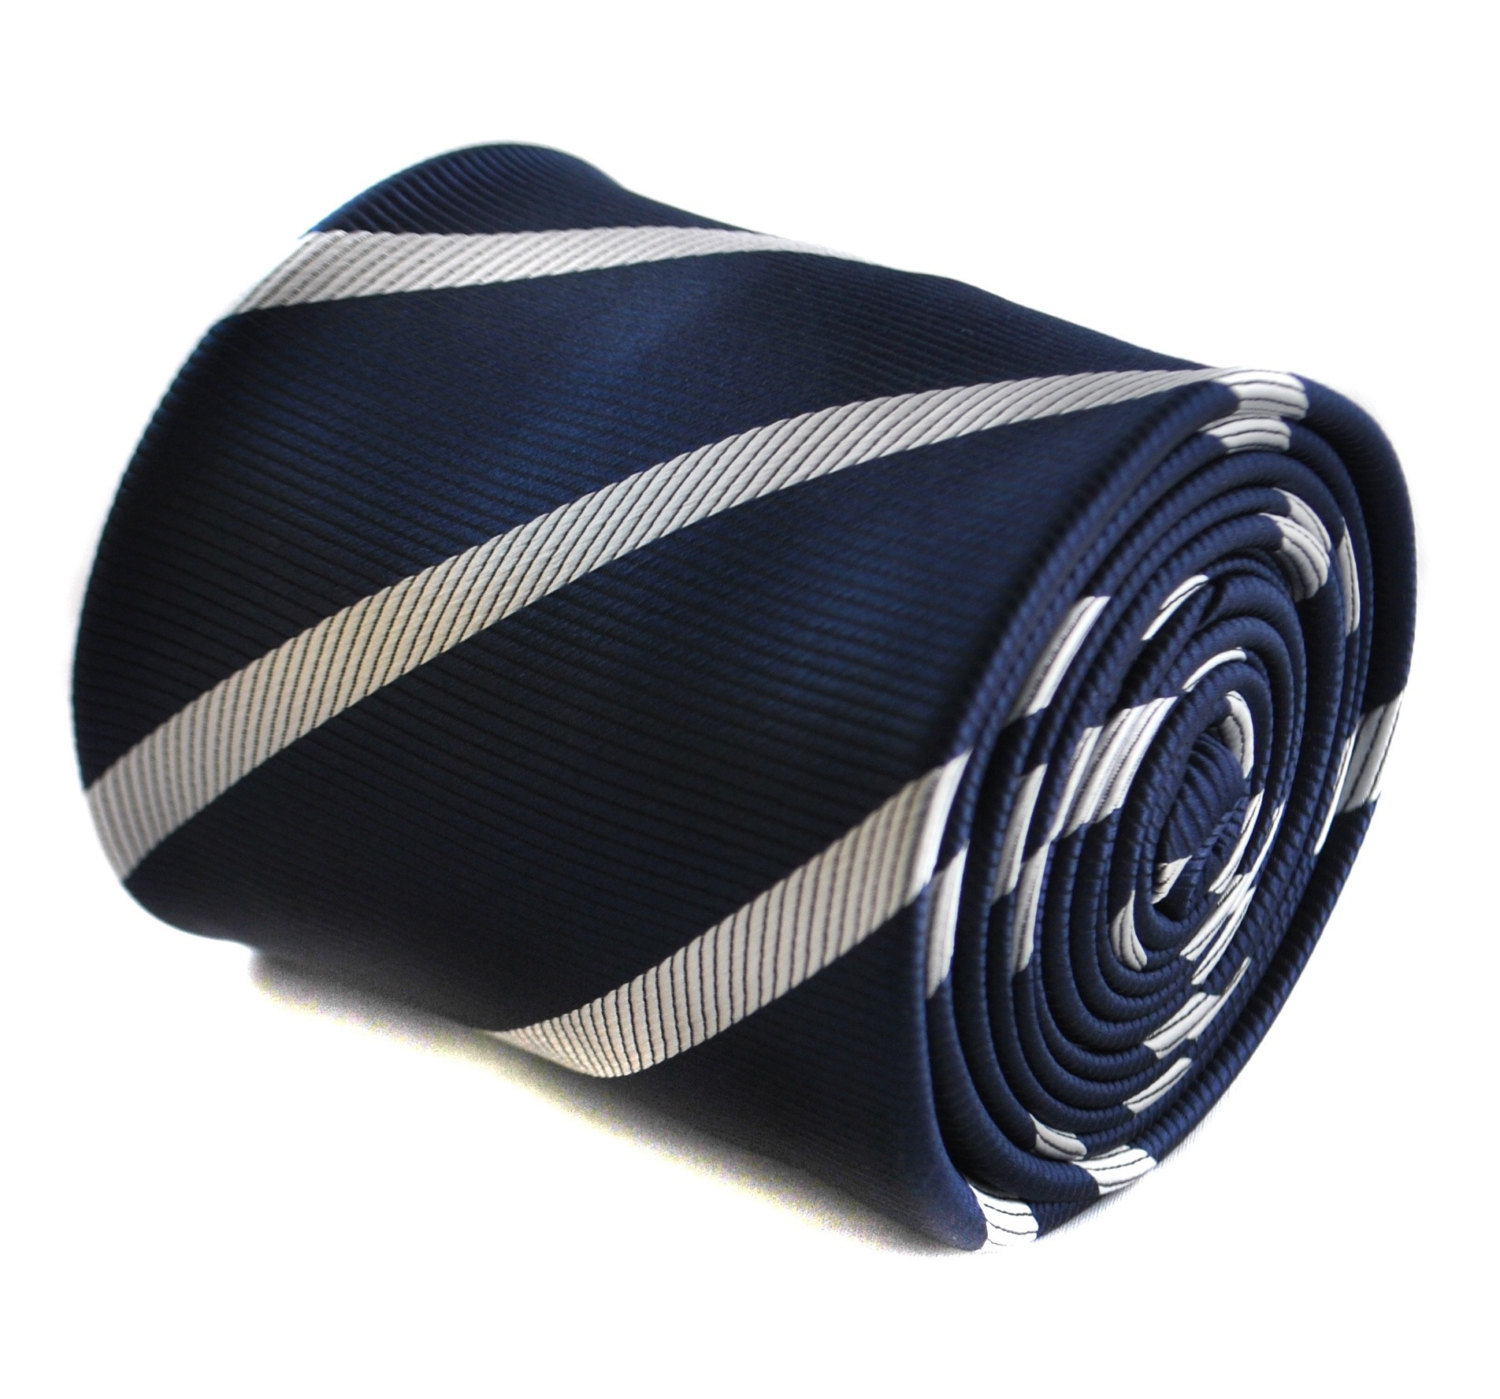 navy and white club striped tie with floral design to the rear by Frederick Thom